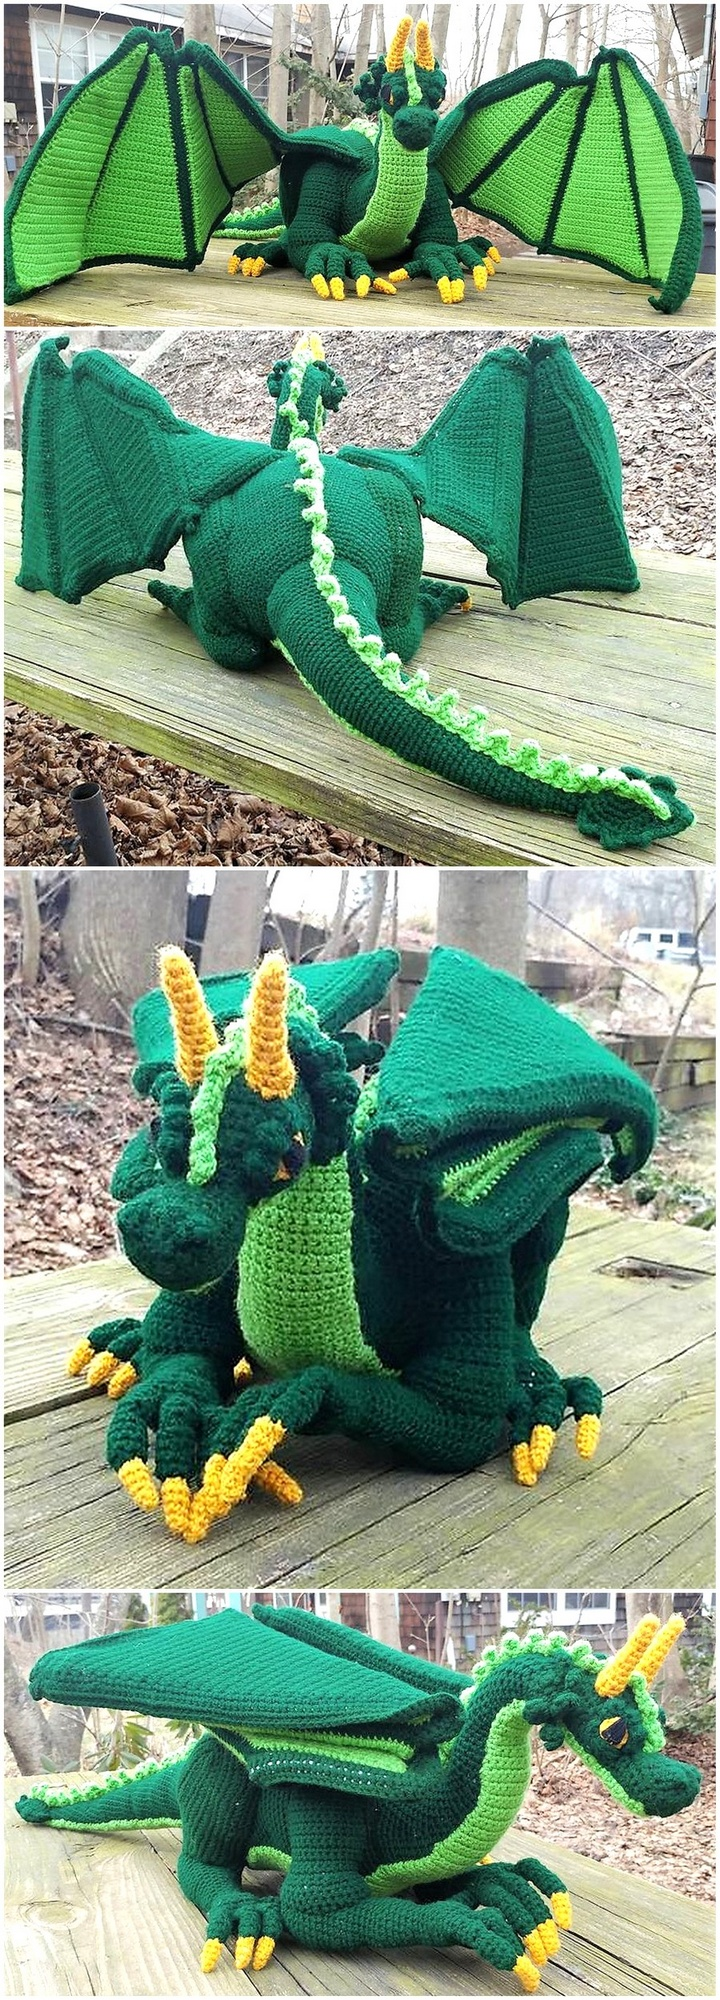 crocheted amigrumi 18